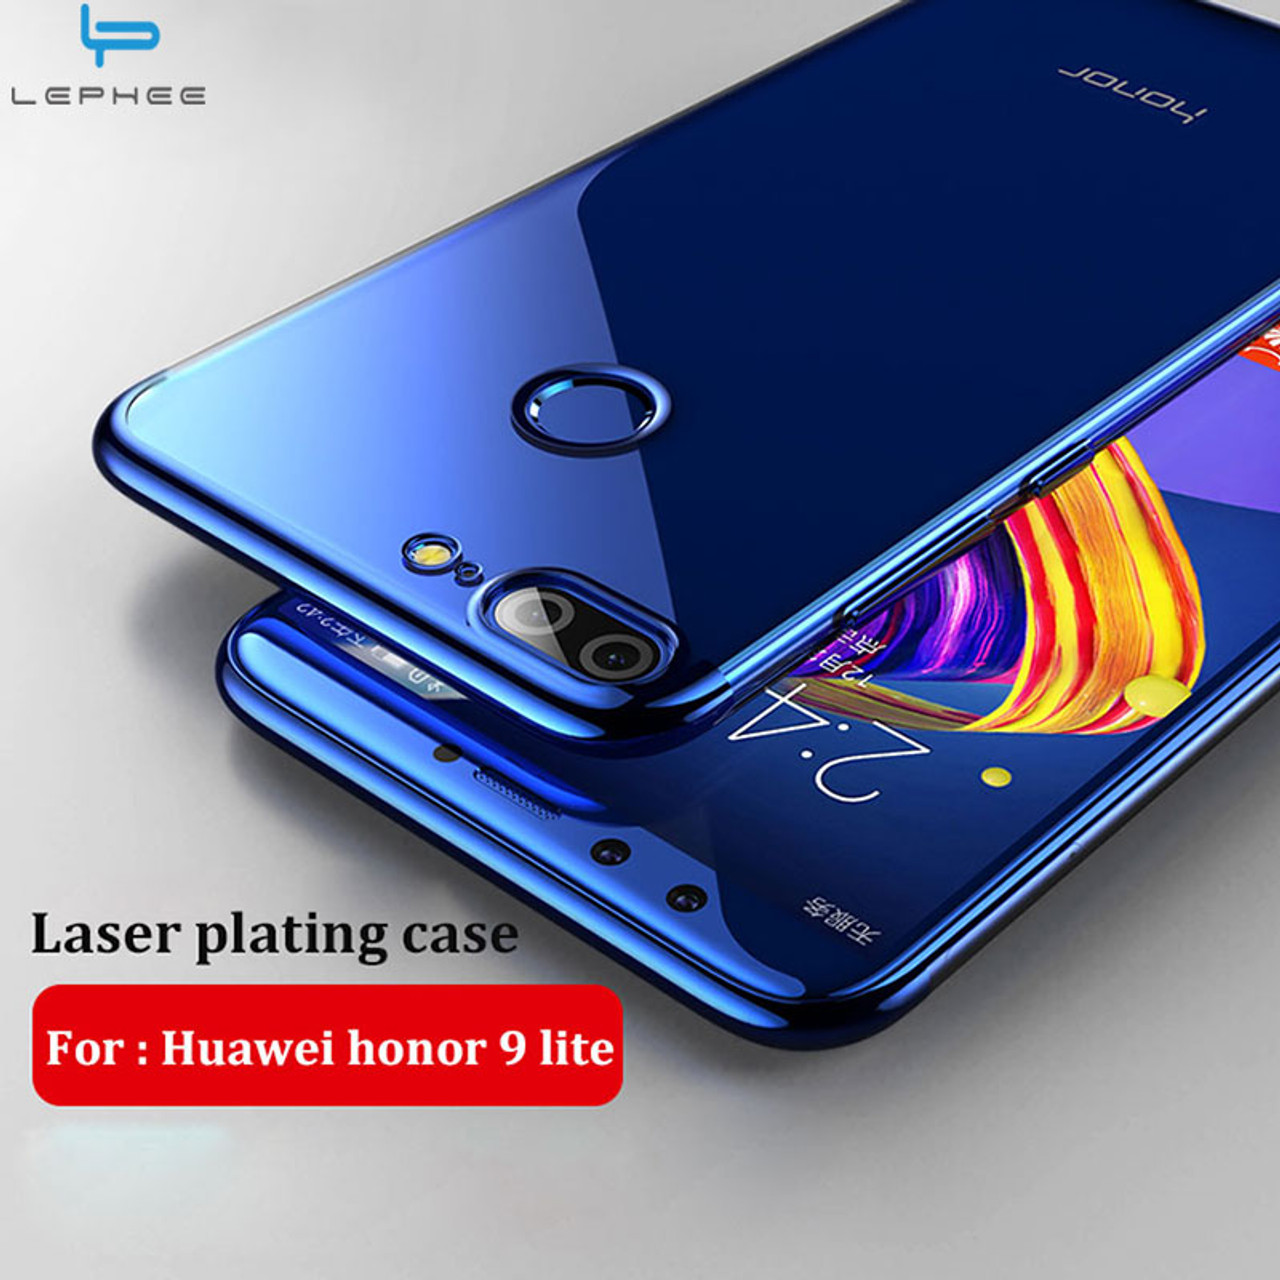 LEPHEE for Huawei honor 9 lite Case for honor 9 lite 2017 Cover Soft TPU  Laser Plating Crystal Phone Cases honor 9 lite 5 65